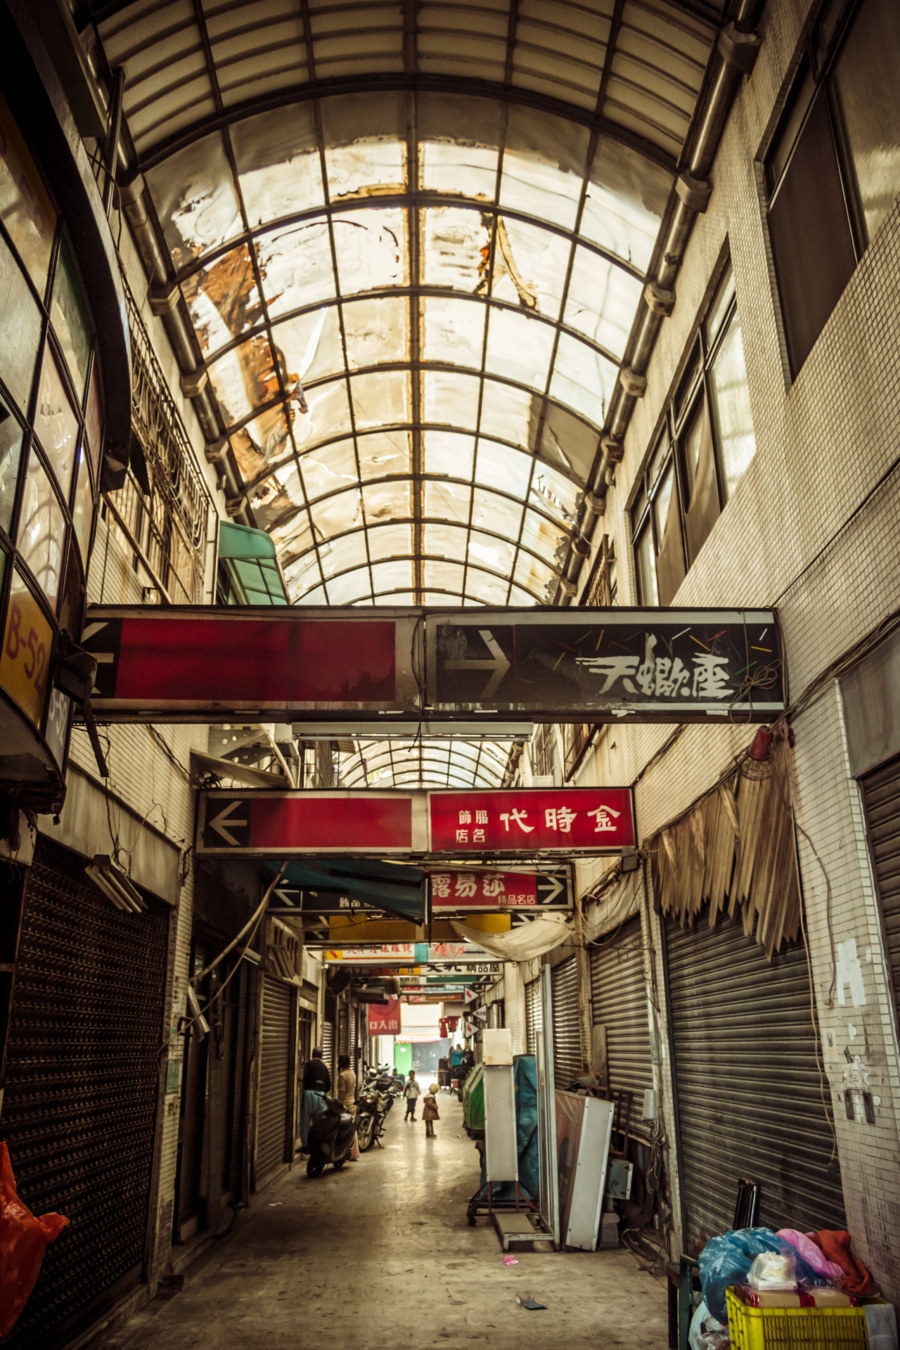 Inside a crusty old mall in Tainan